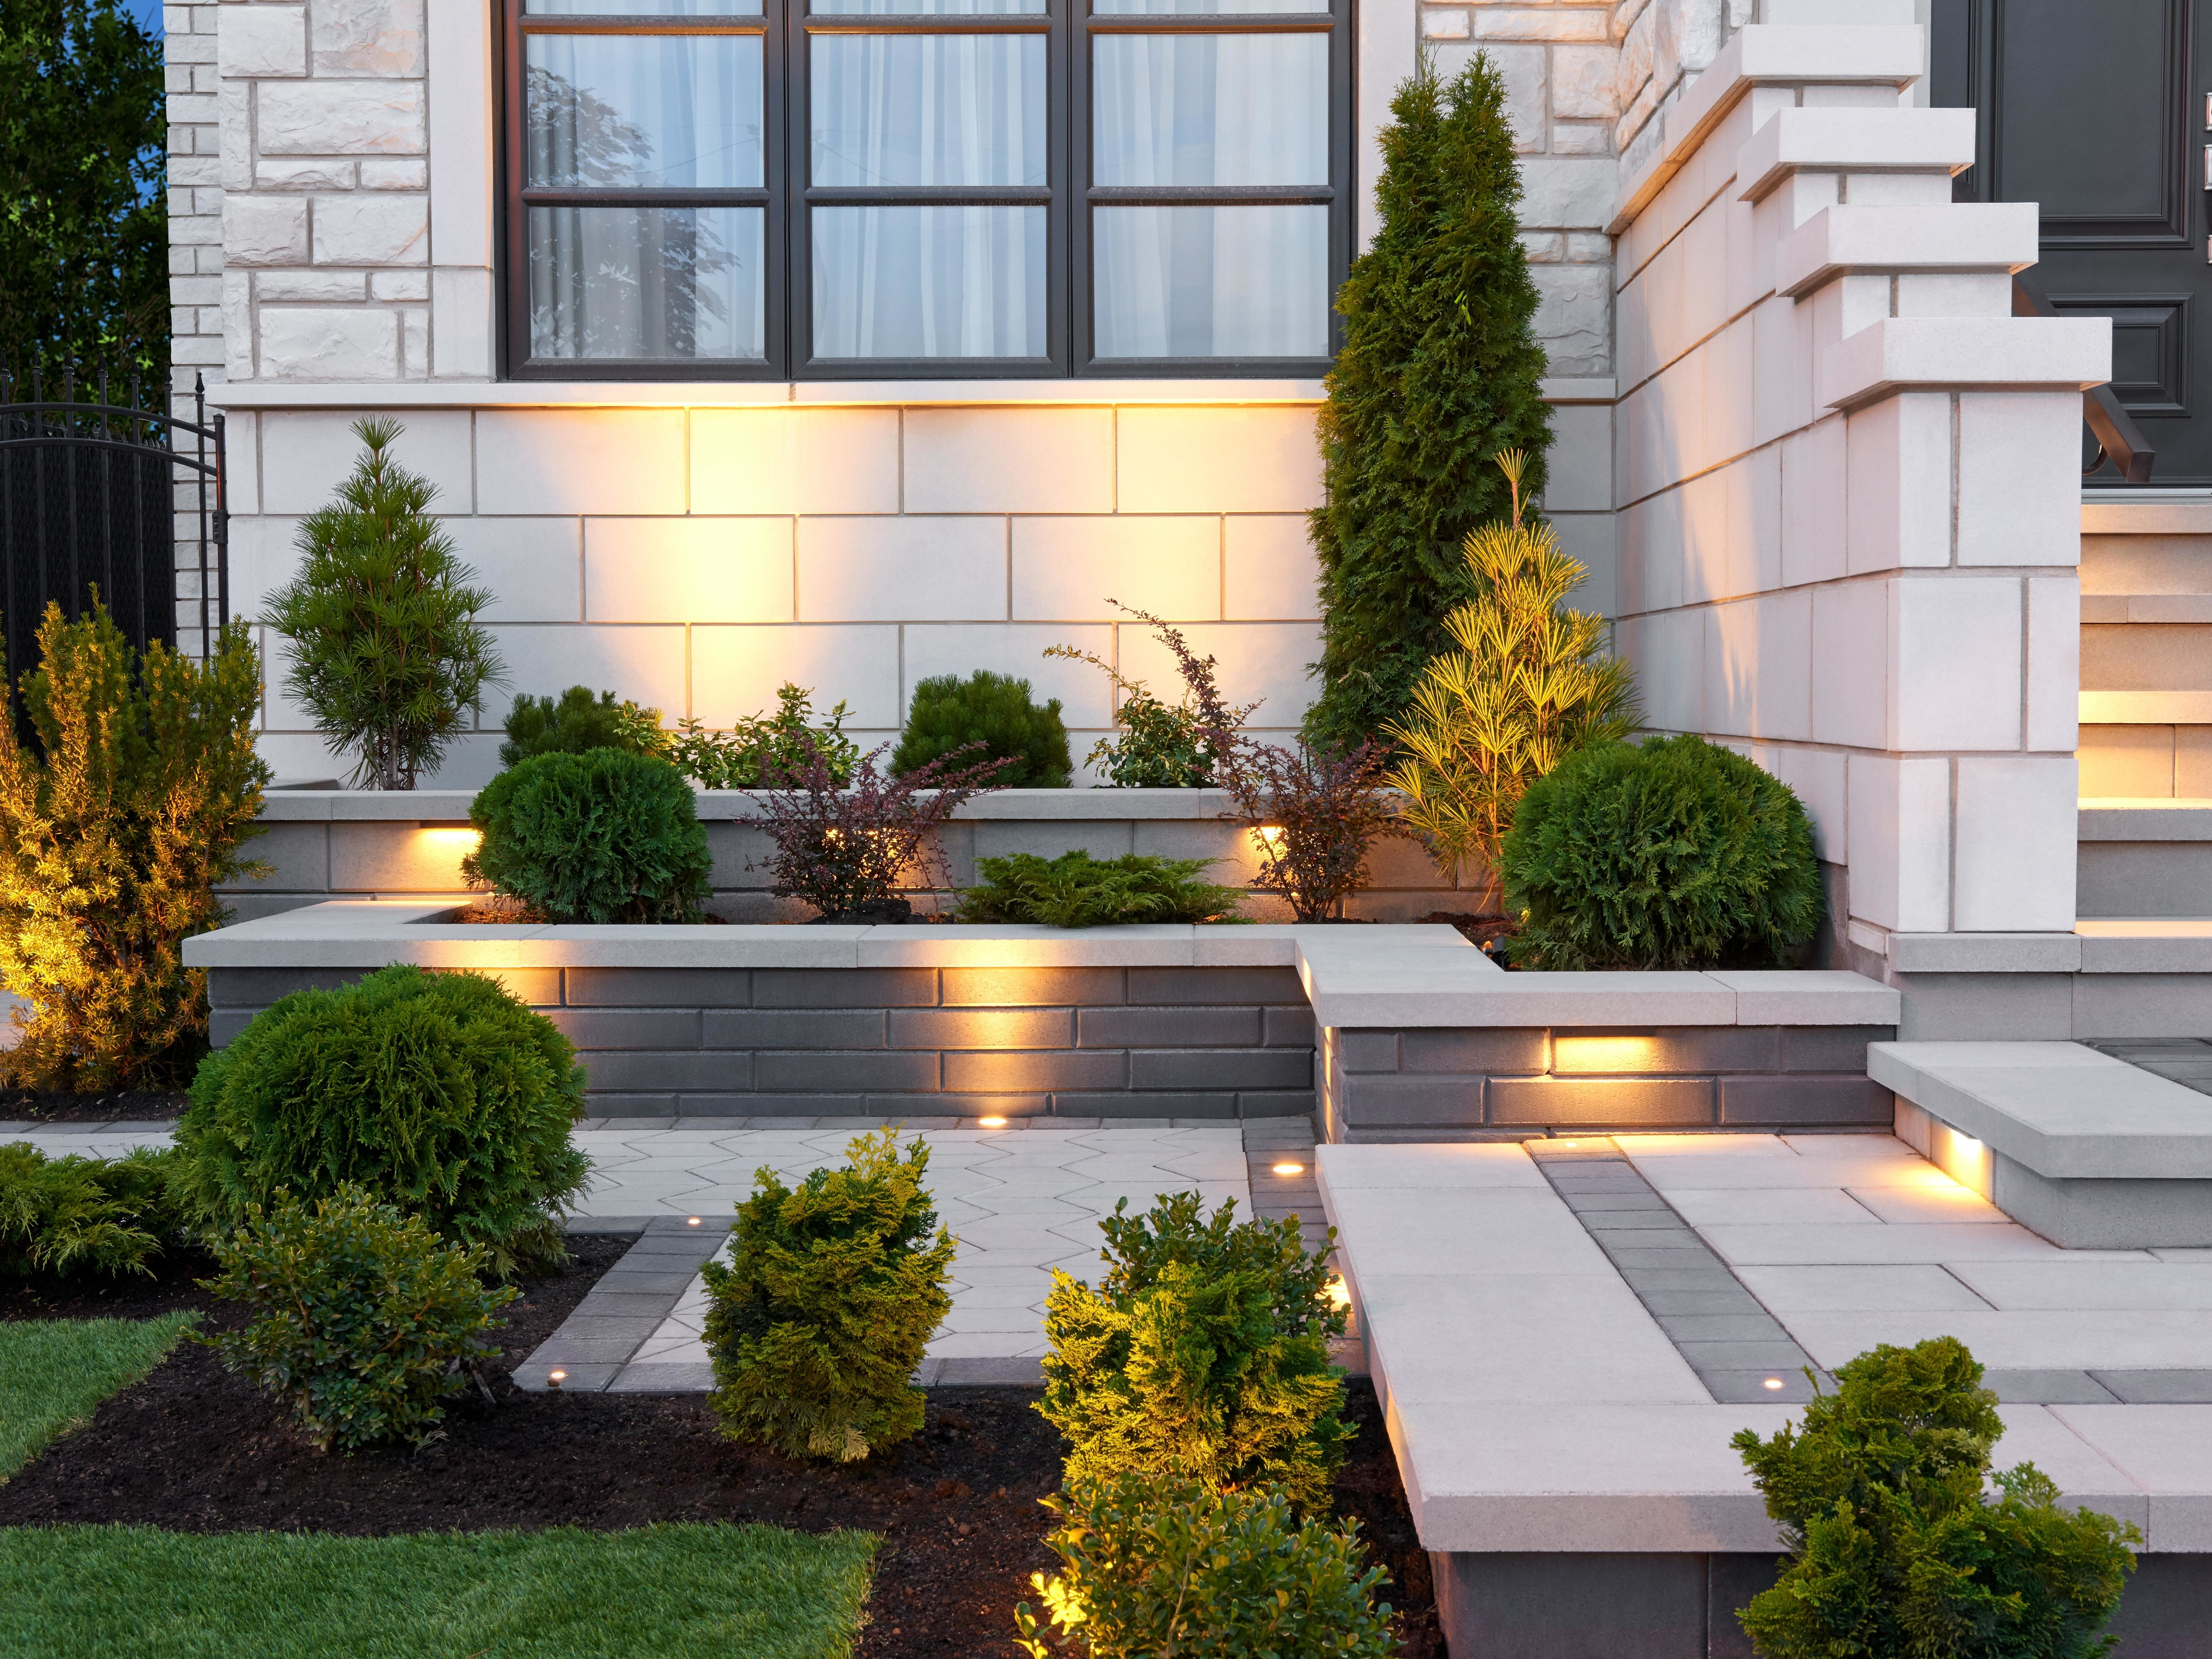 Industria pavers in Greyed Nickel